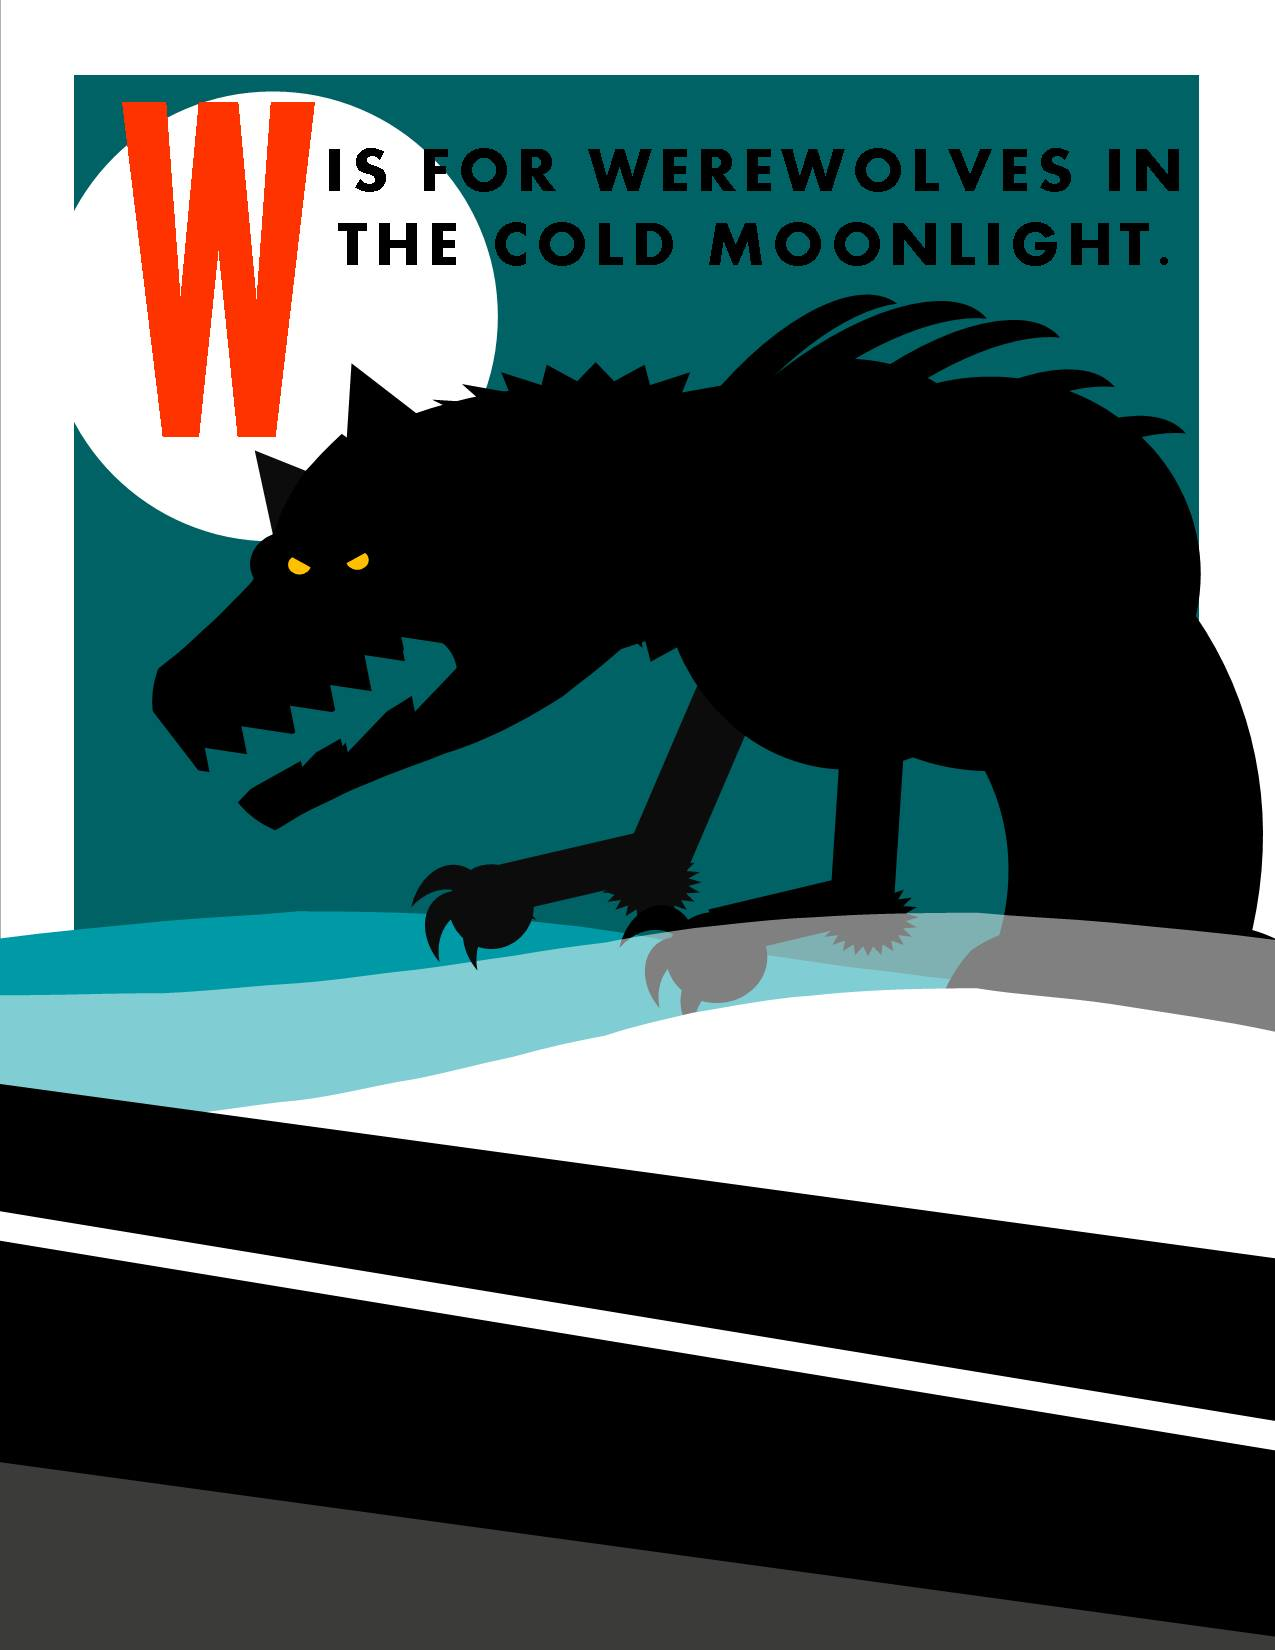 W is for Werewolves in the Cold Moonlight